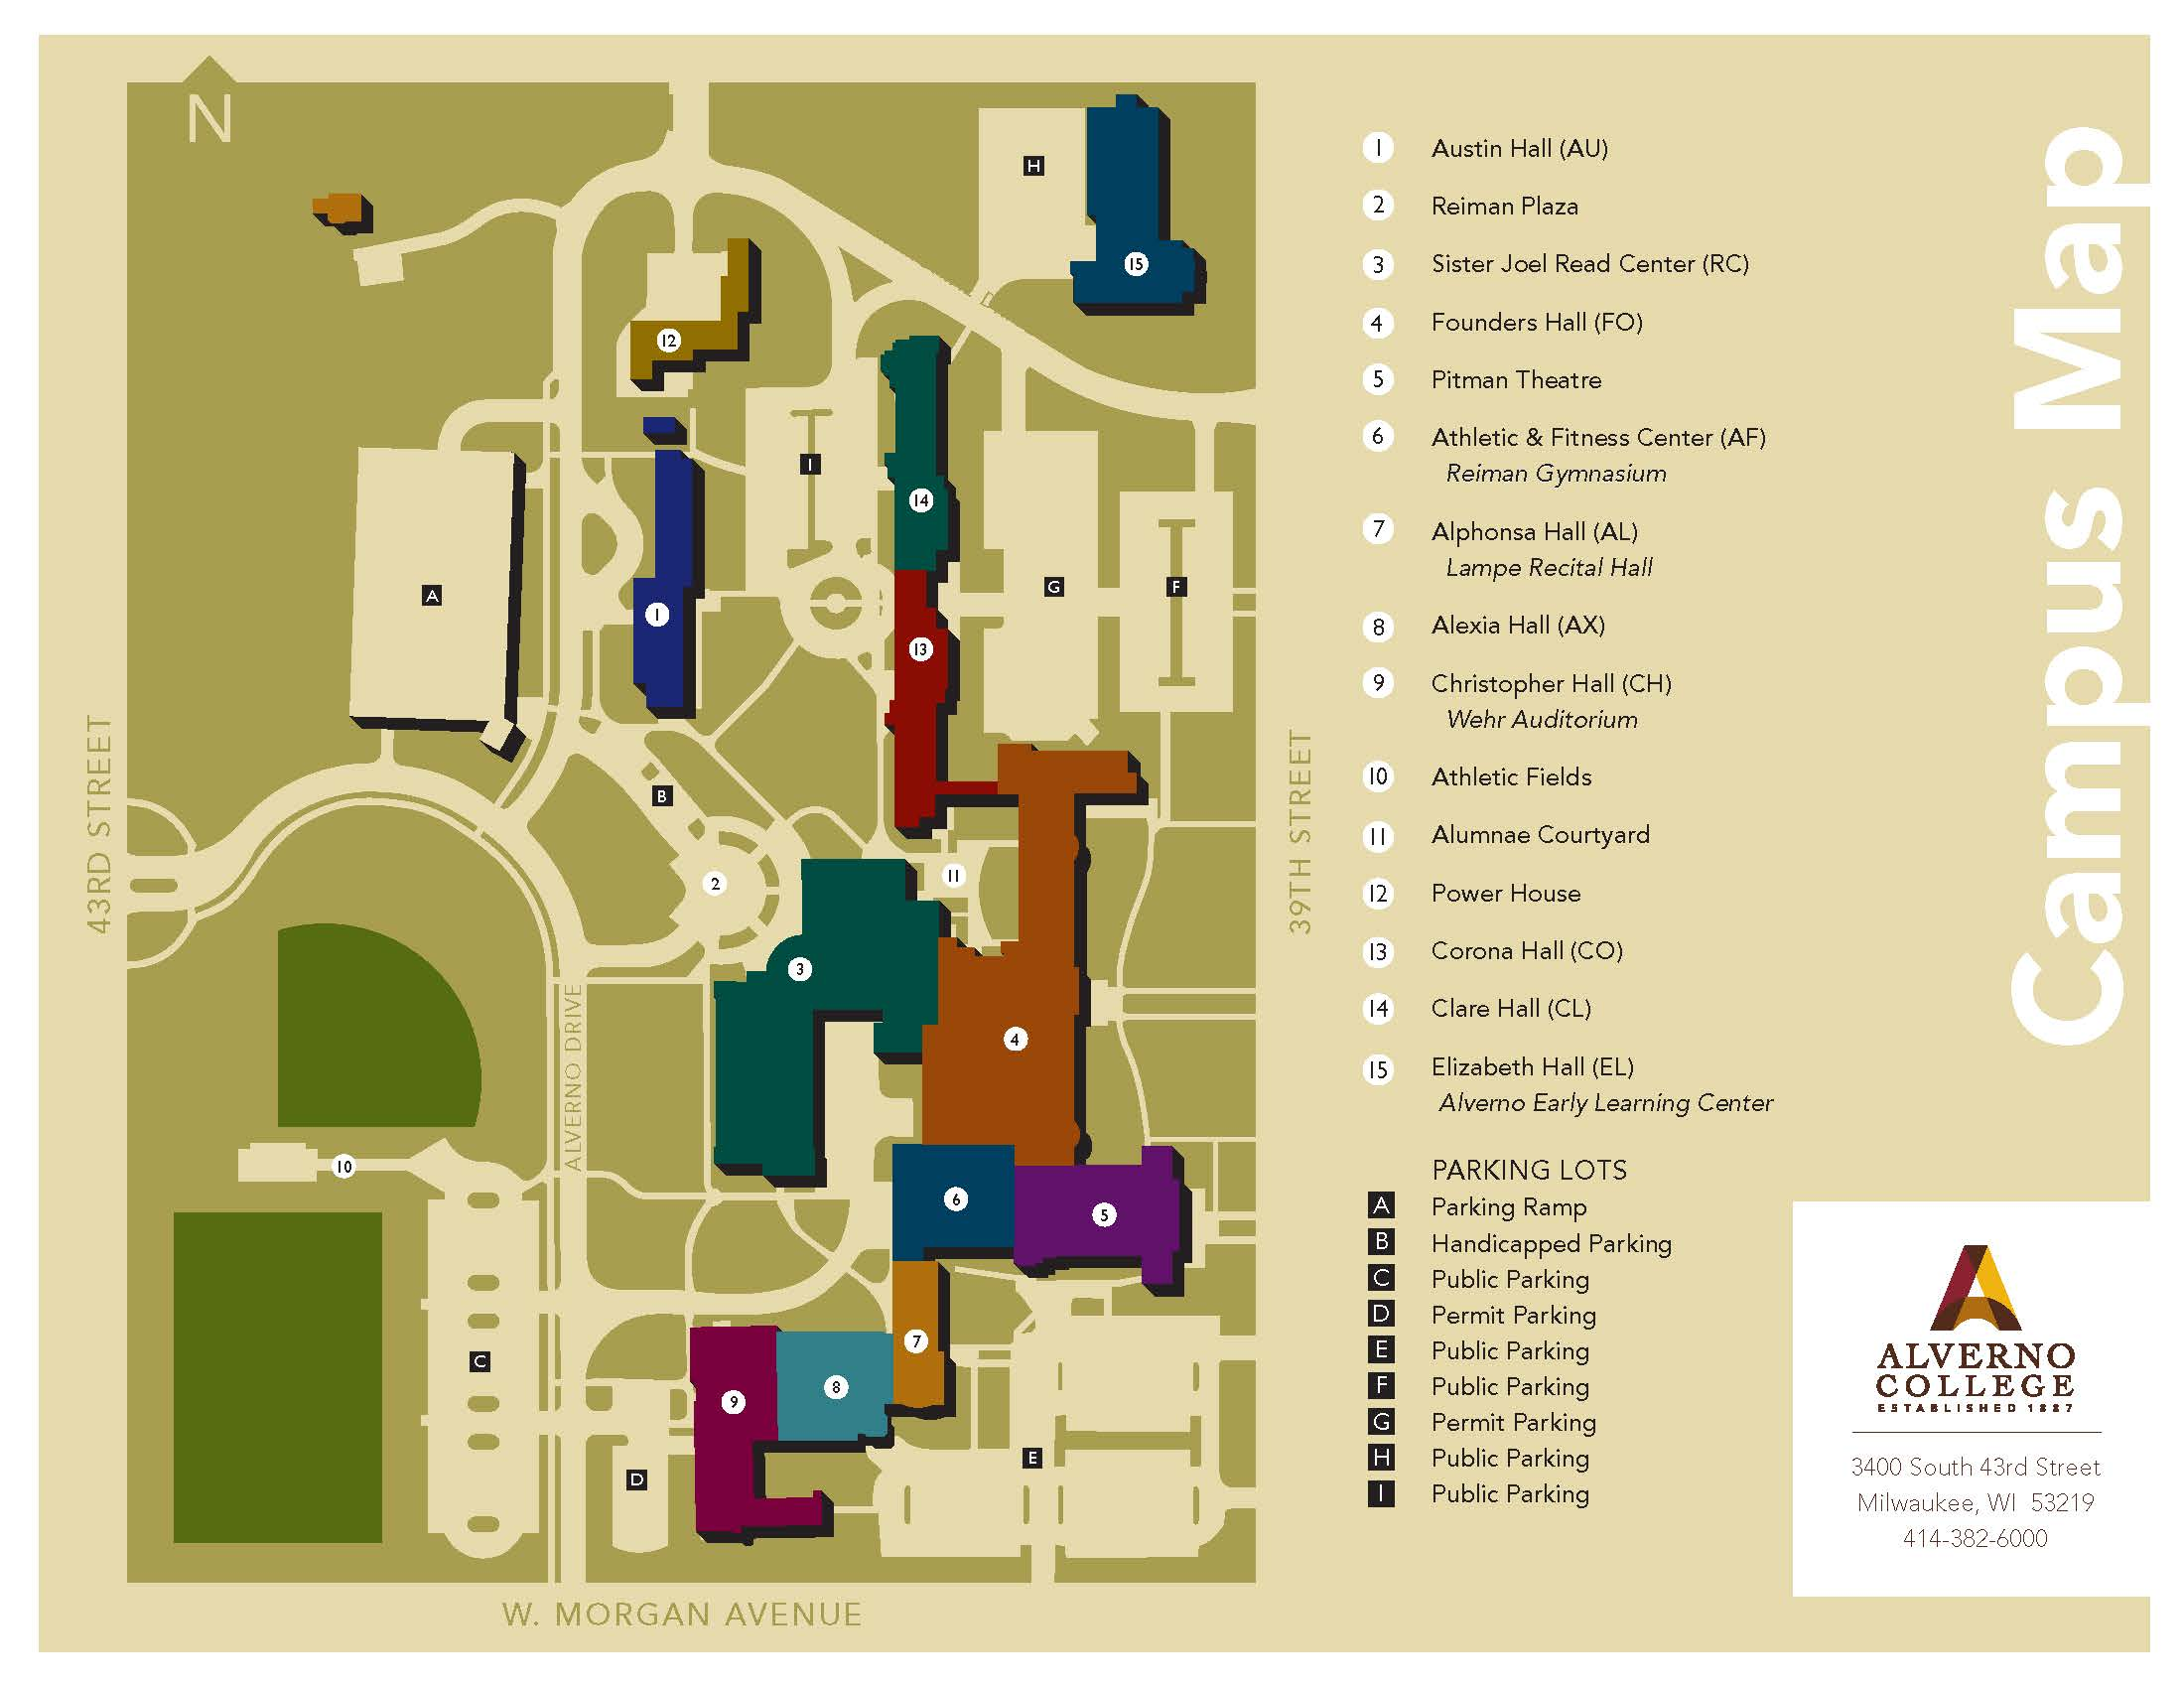 This 2015 Alverno campus map is in color and includes Alexia Hall.